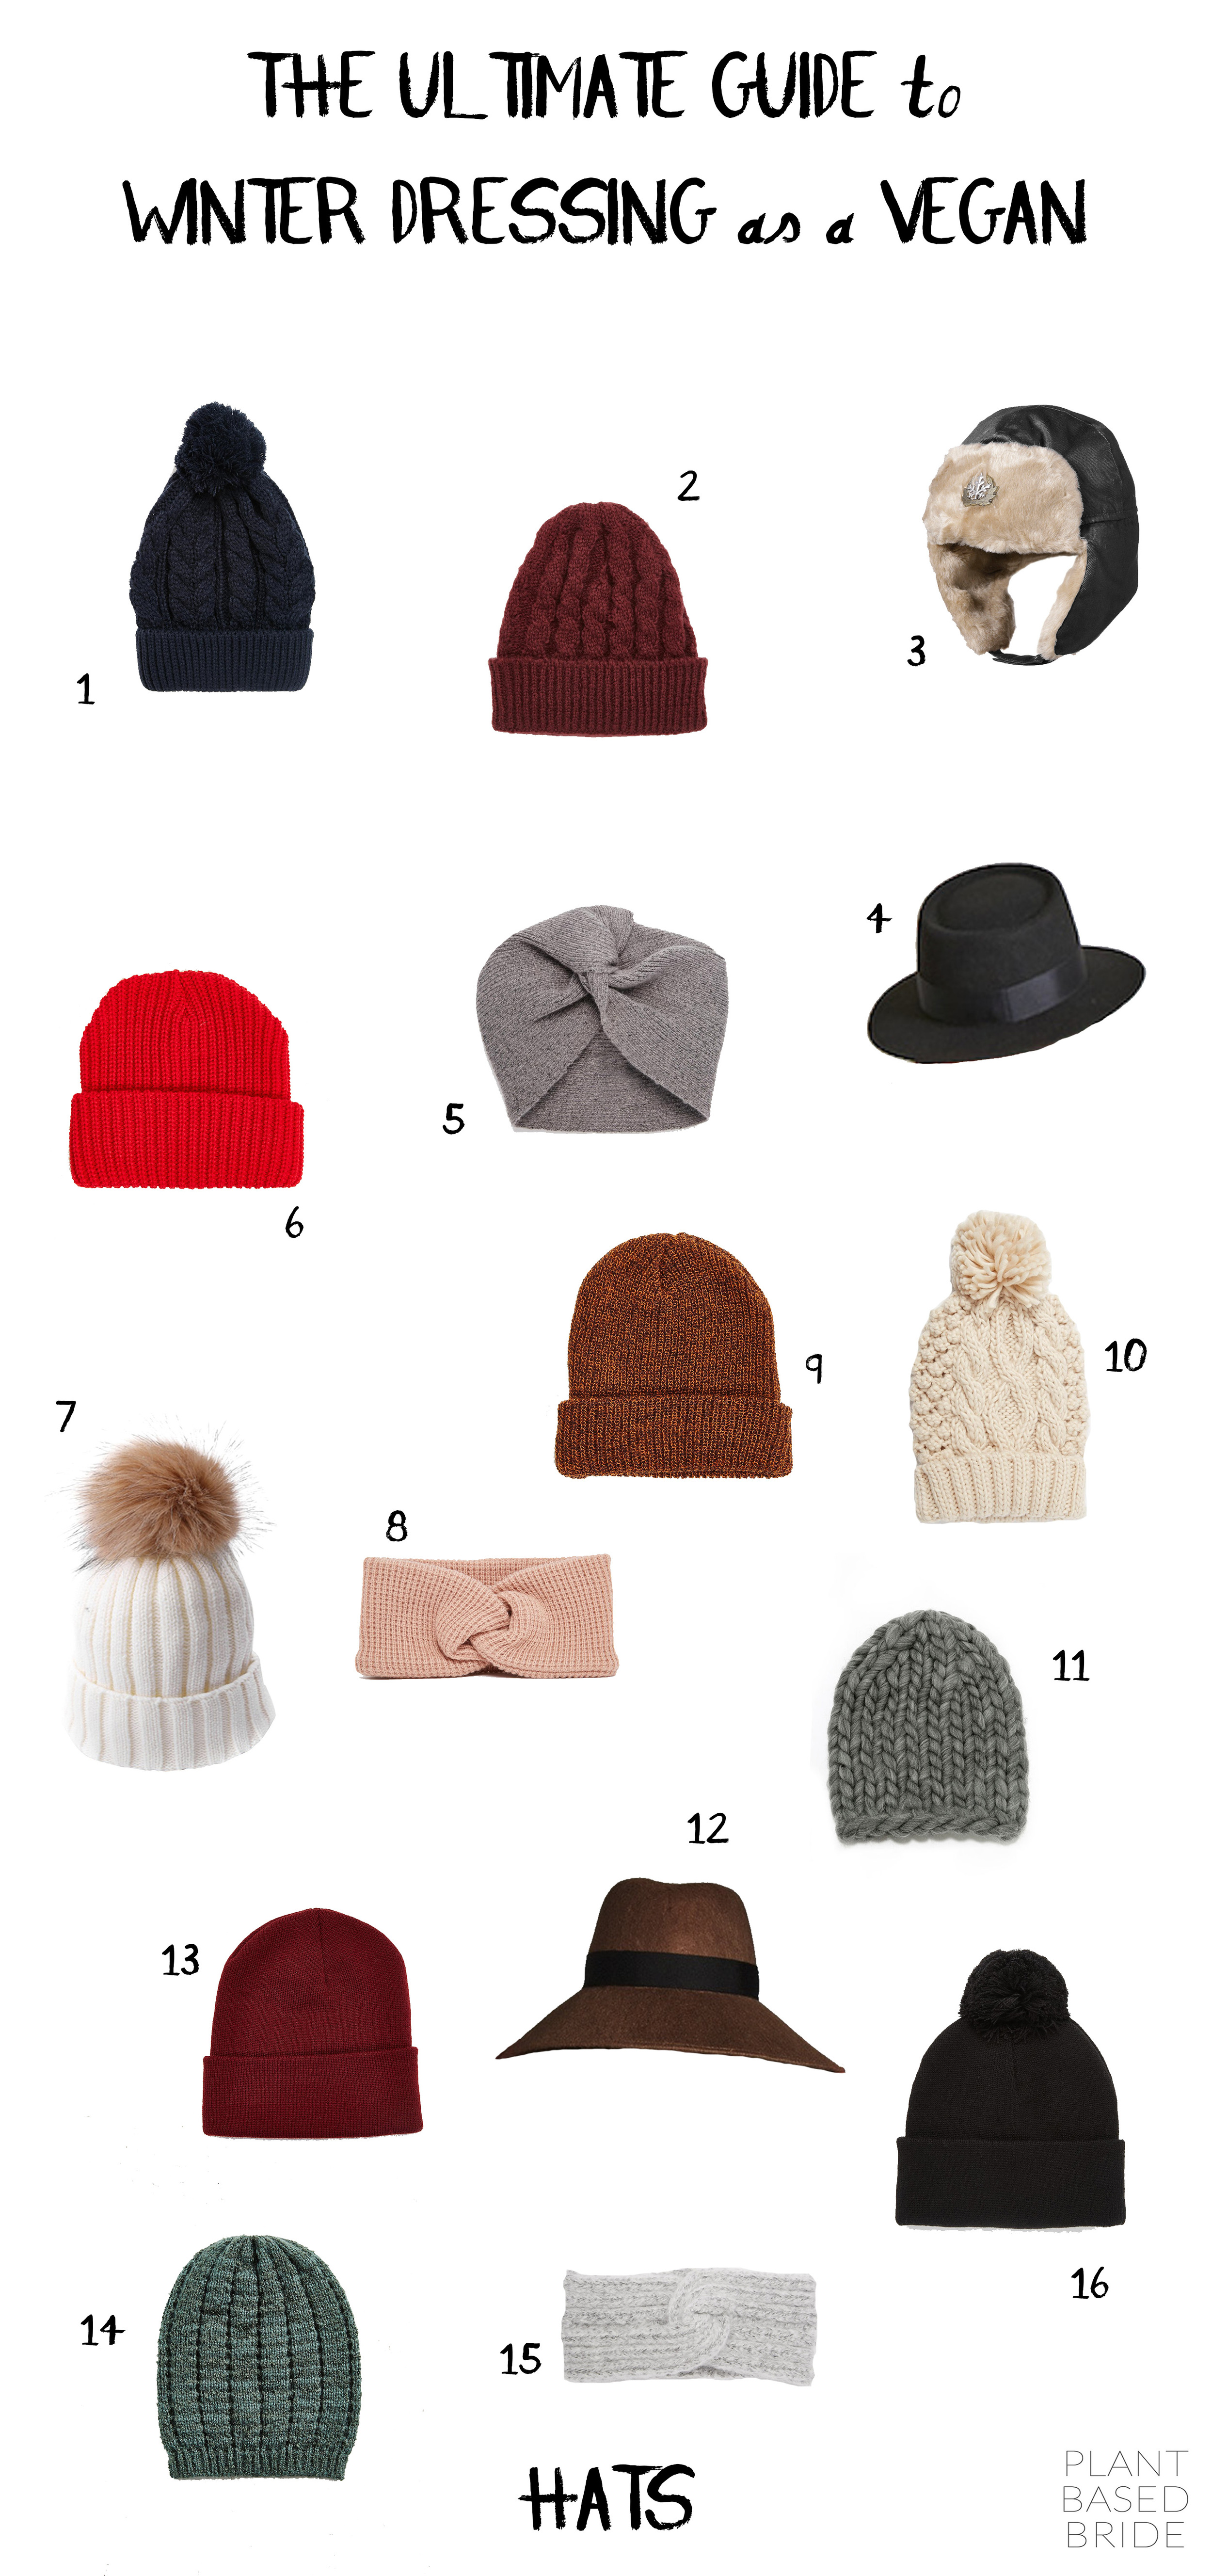 Vegan Hats // The Ultimate Guide to Winter Dressing as a Vegan // Plant Based Bride